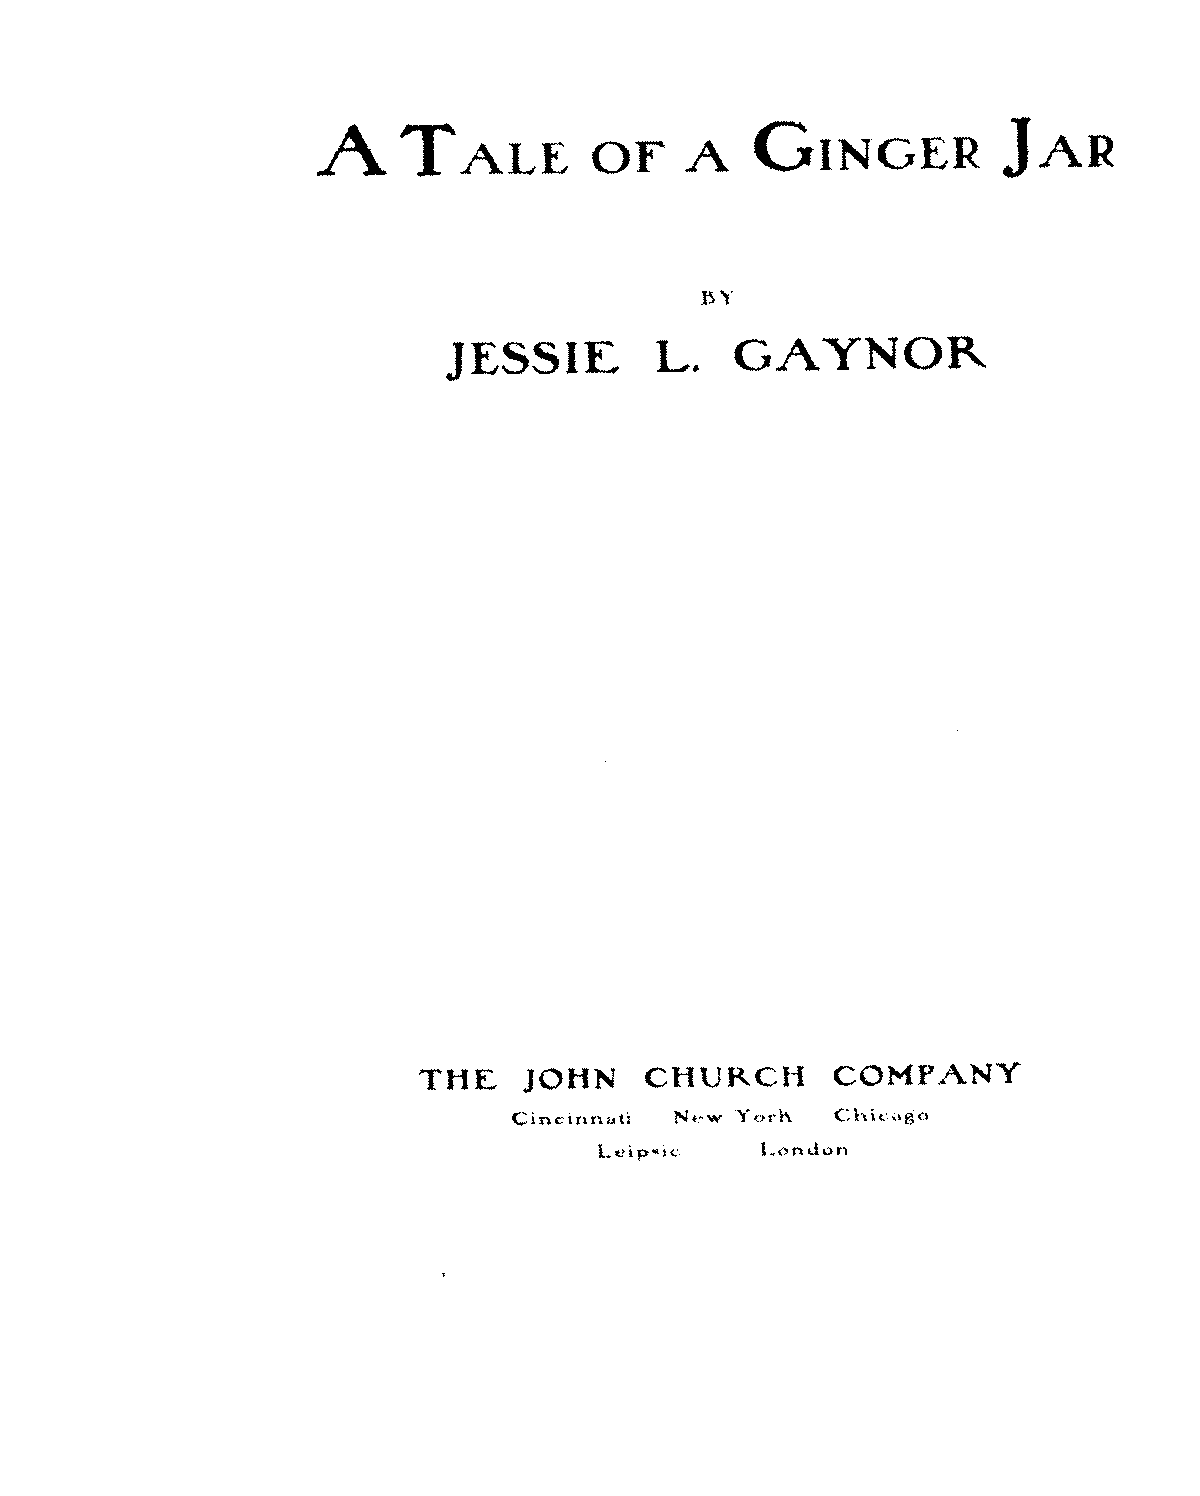 PMLP229559-Gaynor A Tale of a Ginger Jar cropped.pdf